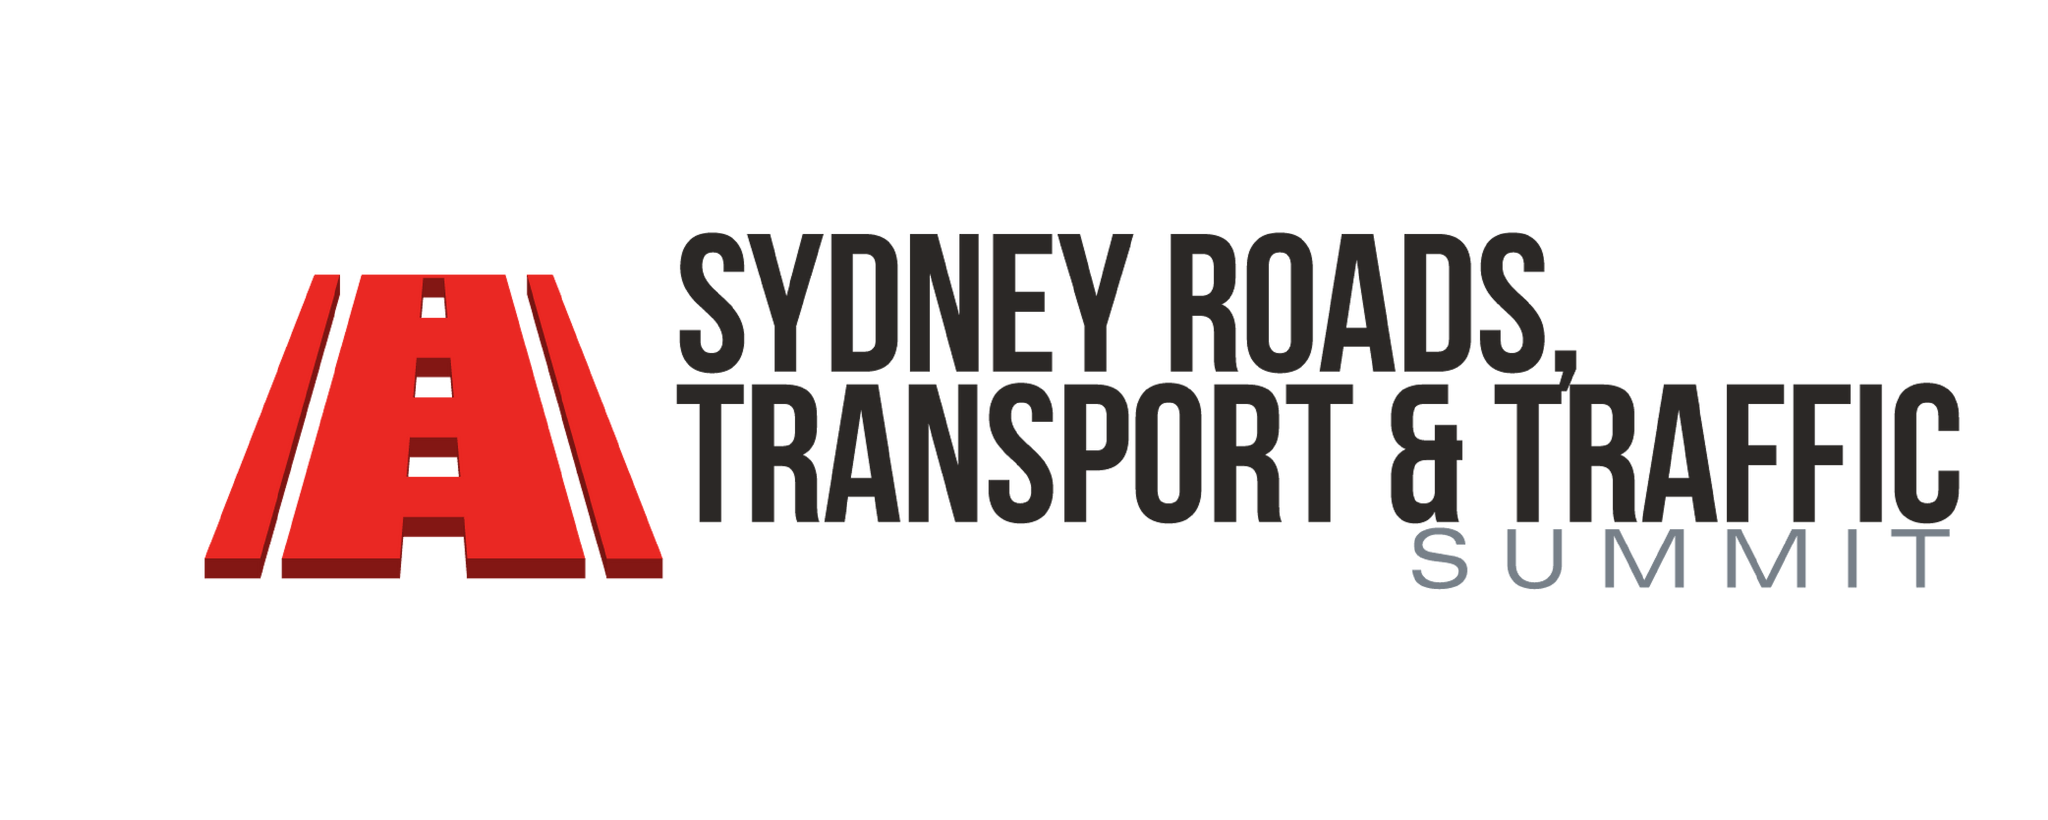 SYDNEY ROADS, TRANSPORT & TRAFFIC SUMMIT